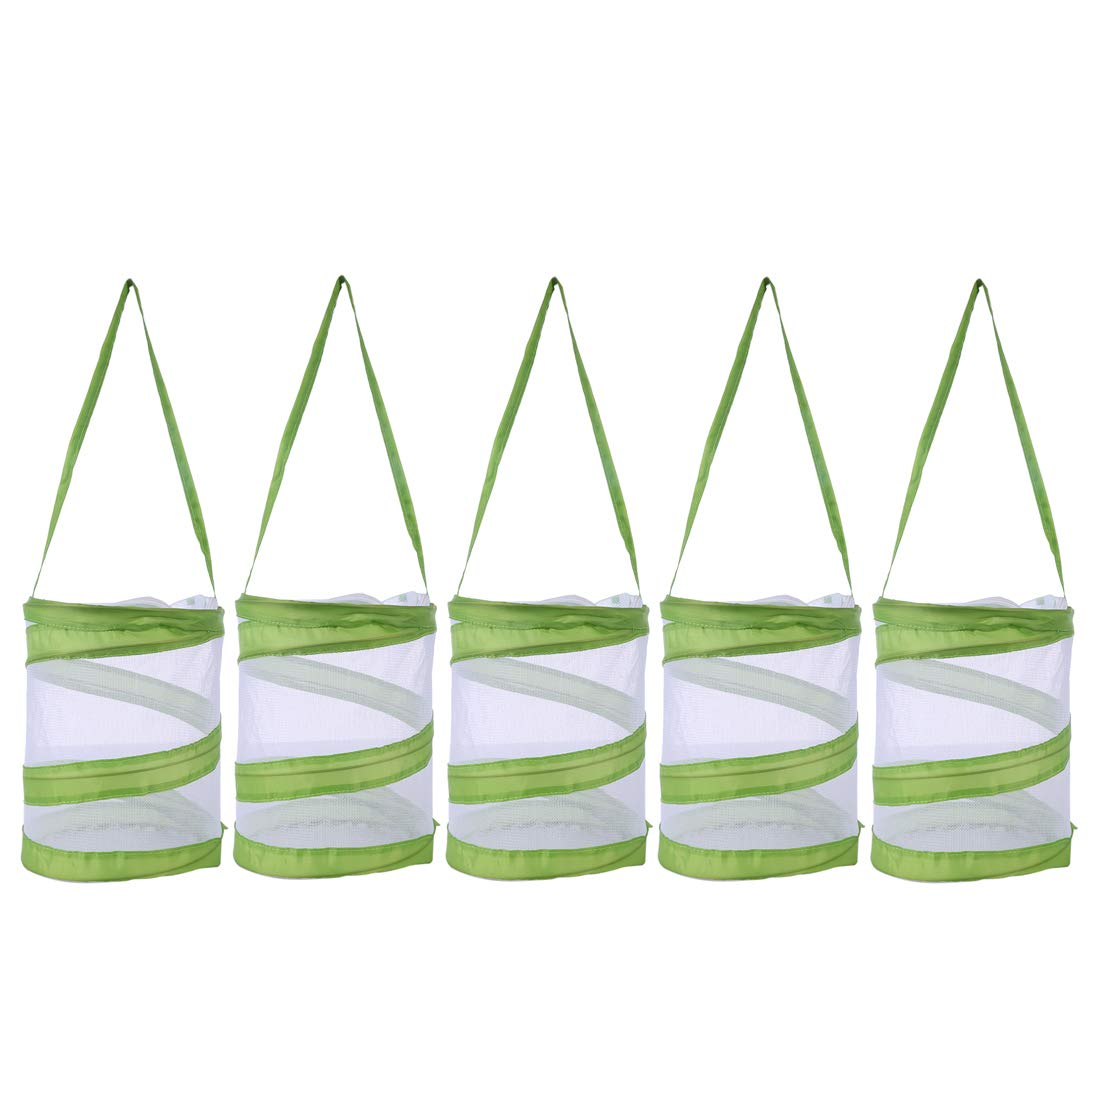 Yamix 5Pack Mini Mesh Butterfly House Butterfly and Insect Habitat Cage Butterfly Terrarium Pop-up